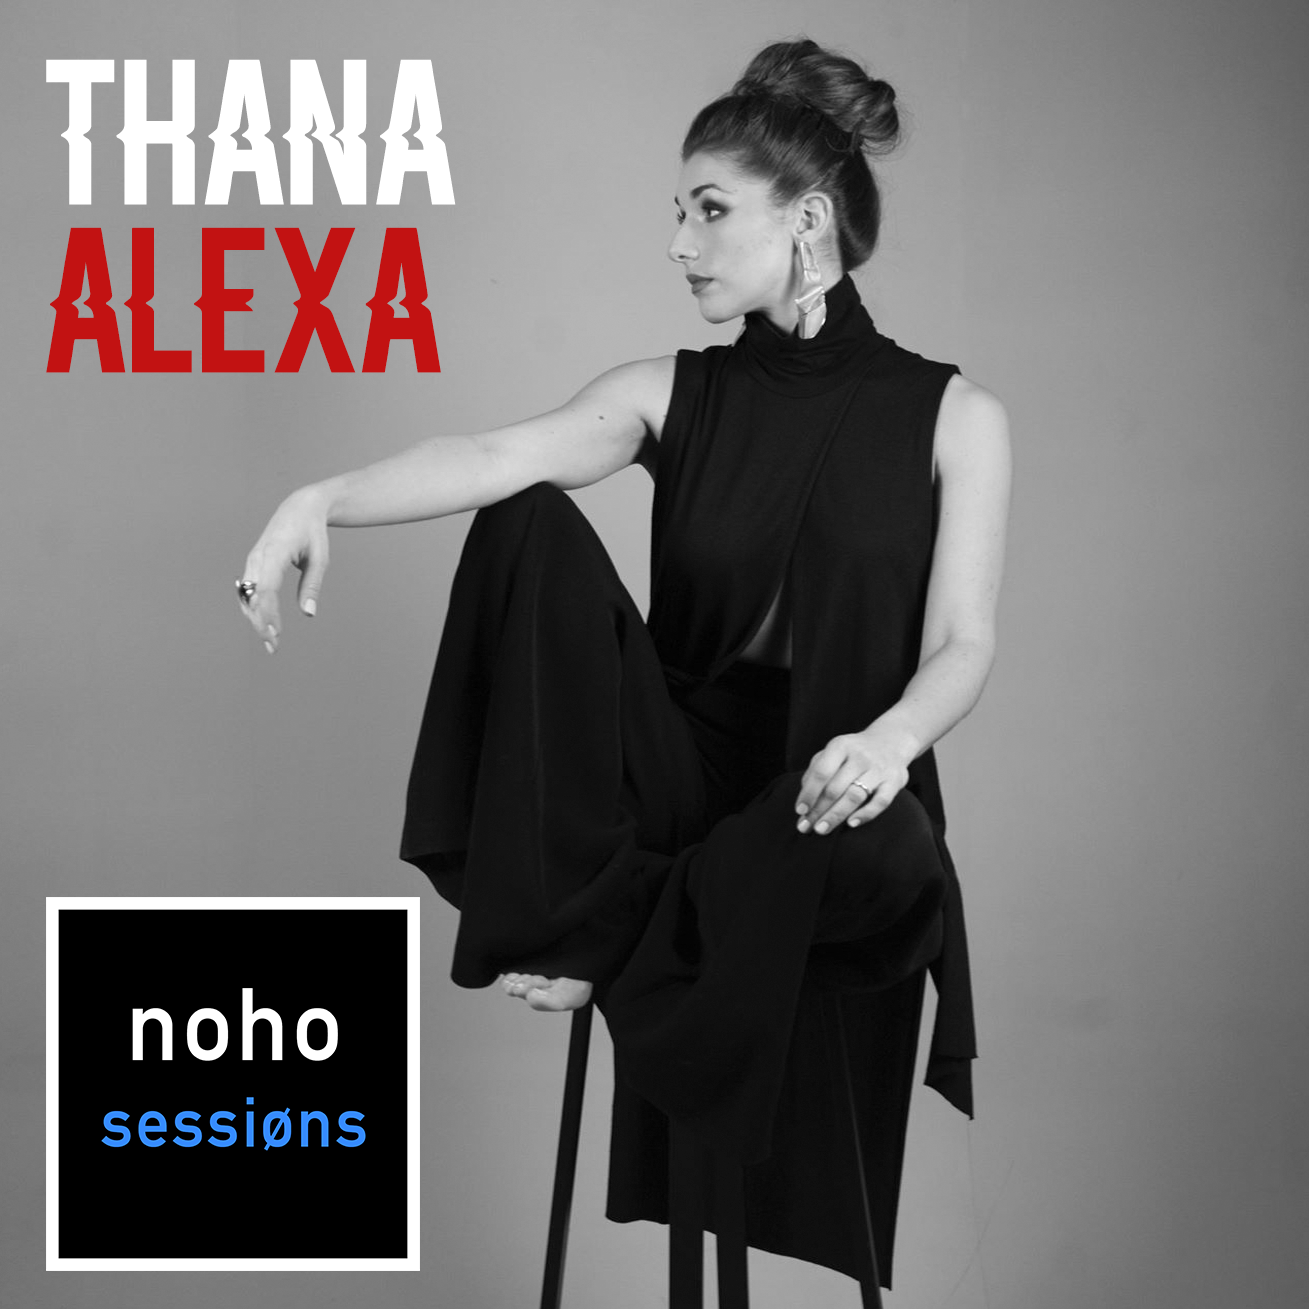 thana alexa artwork.png